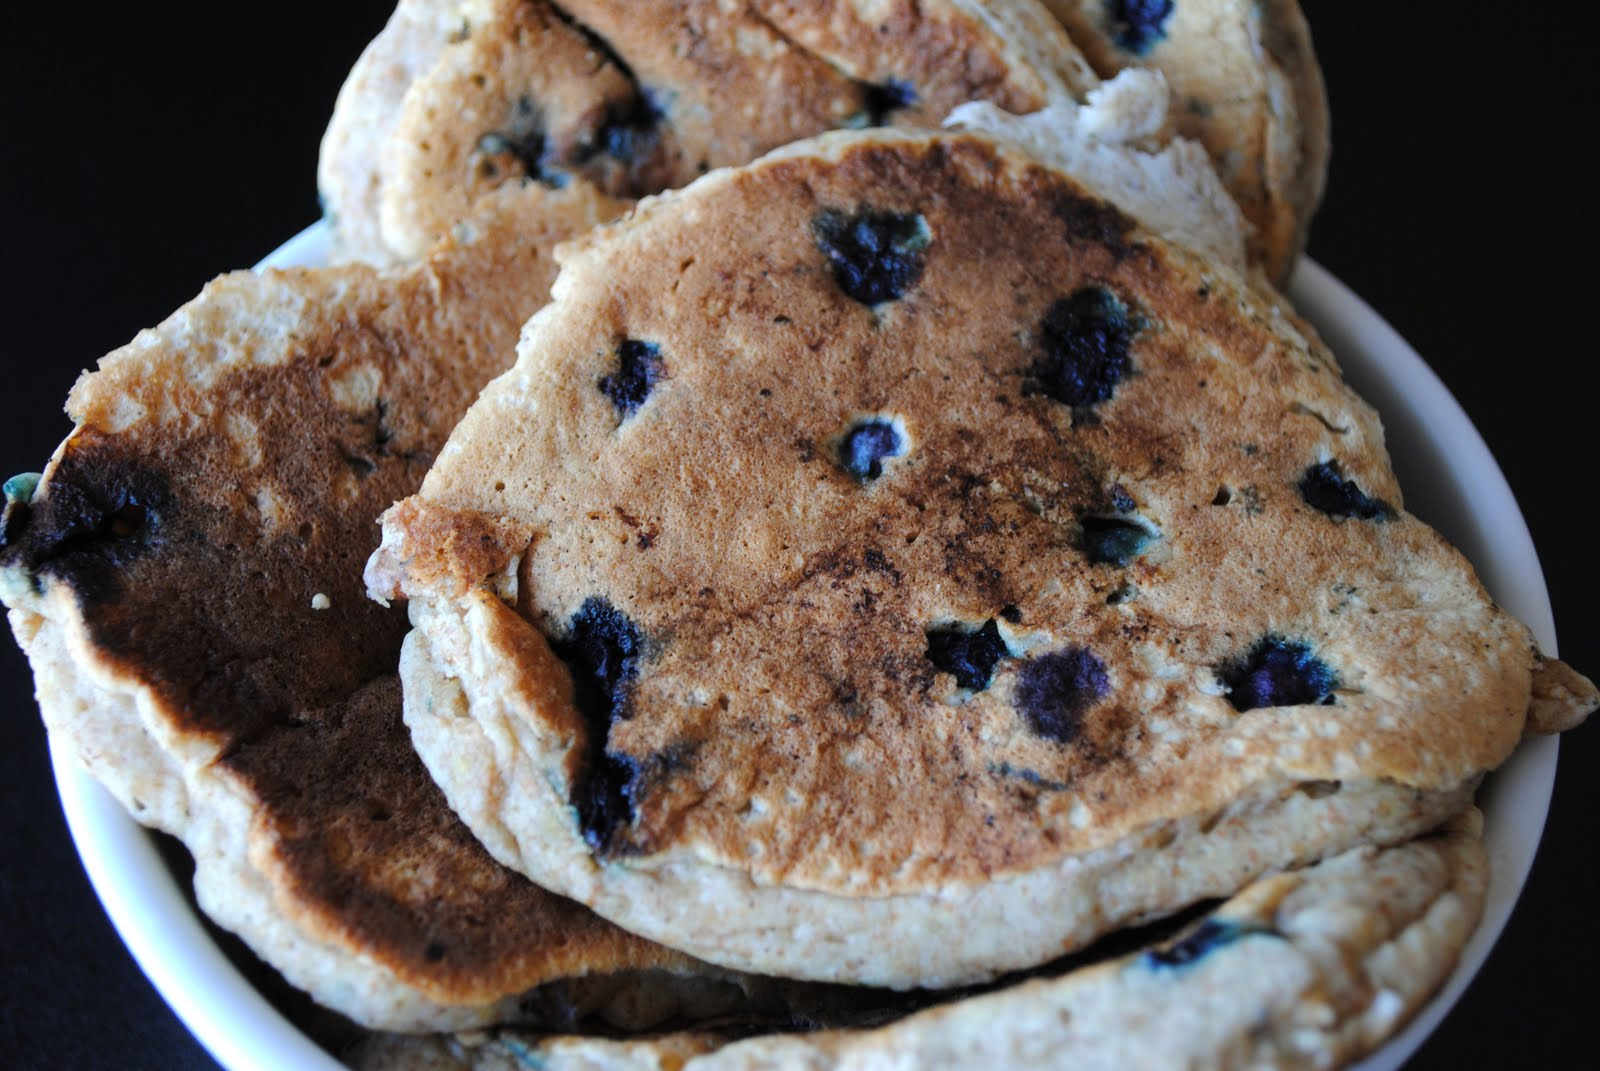 The 'Chefski Digest: Oatmeal Buttermilk Blueberry Pancakes